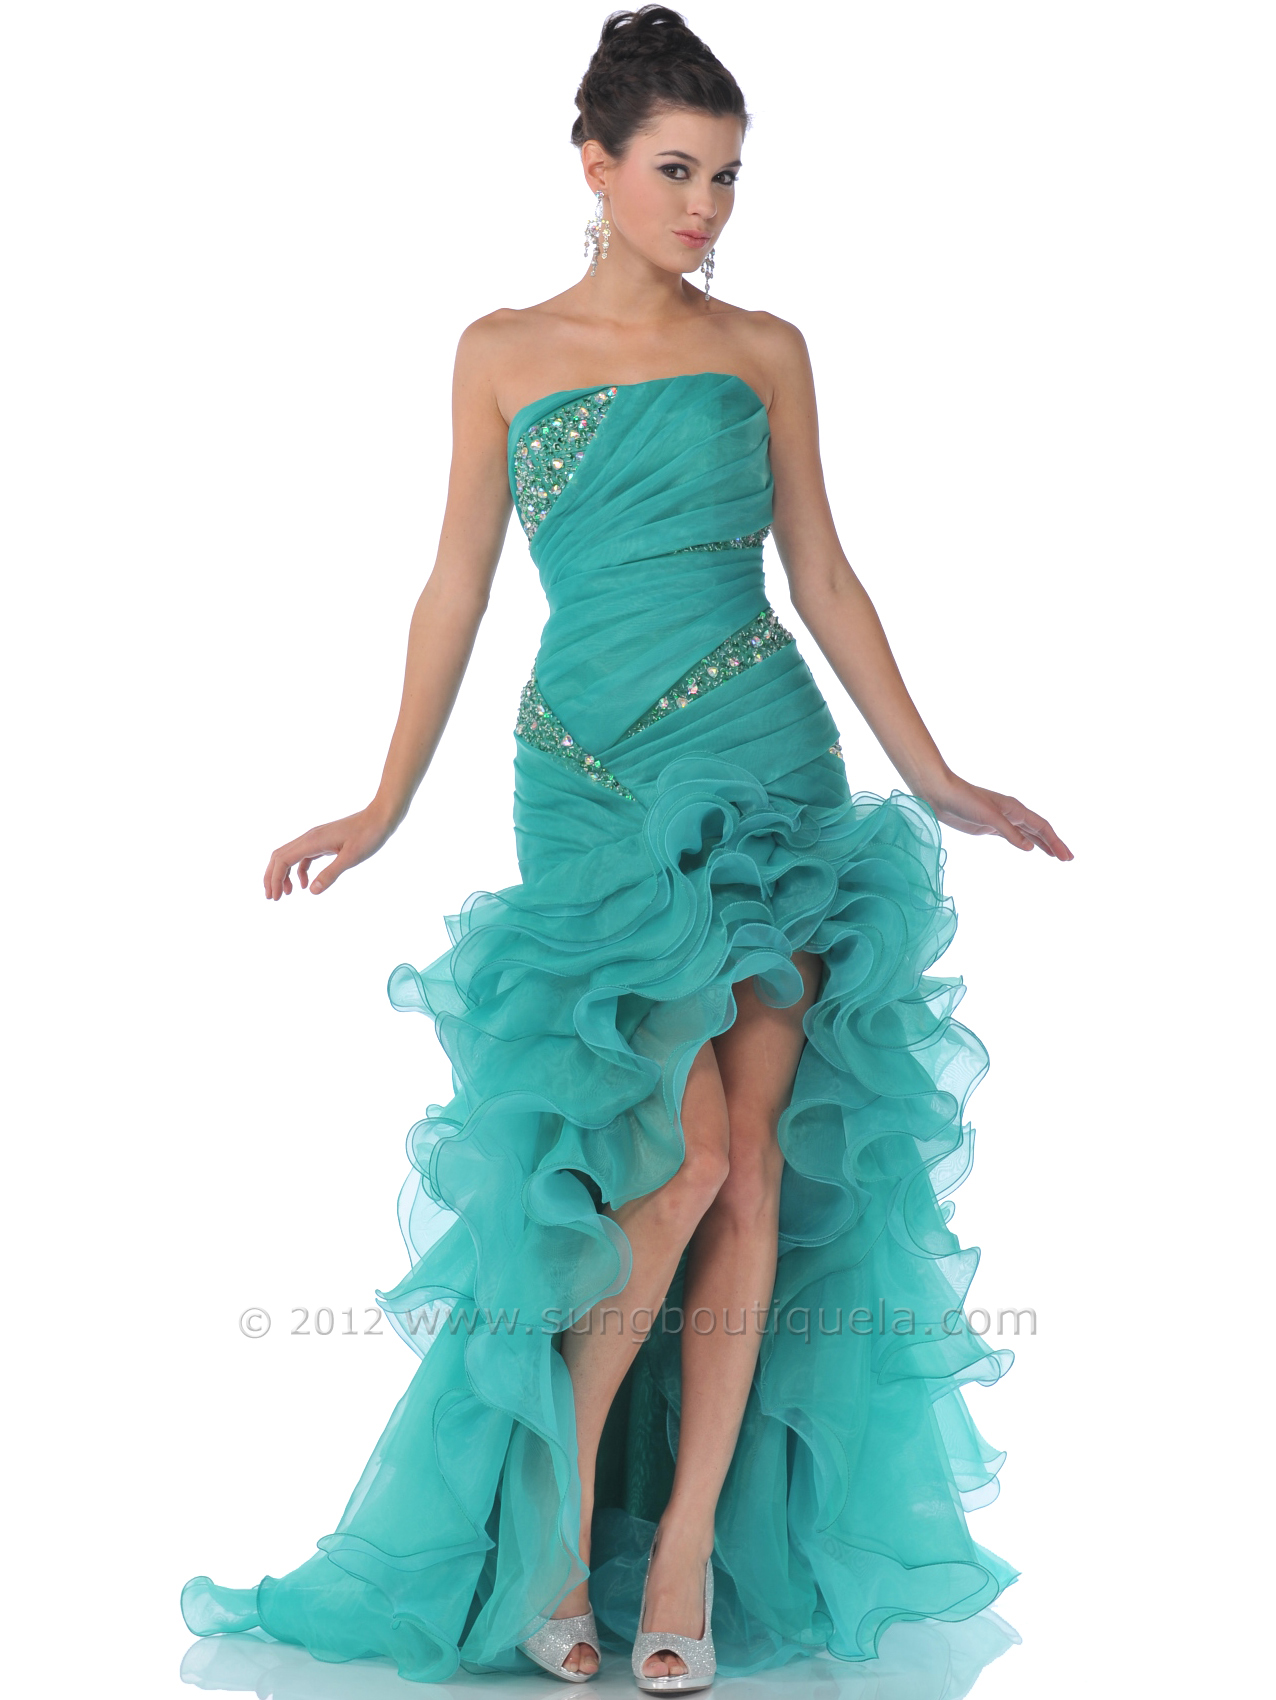 Strapless Beaded Ruffle High Low Organza Prom Dress | Sung ...